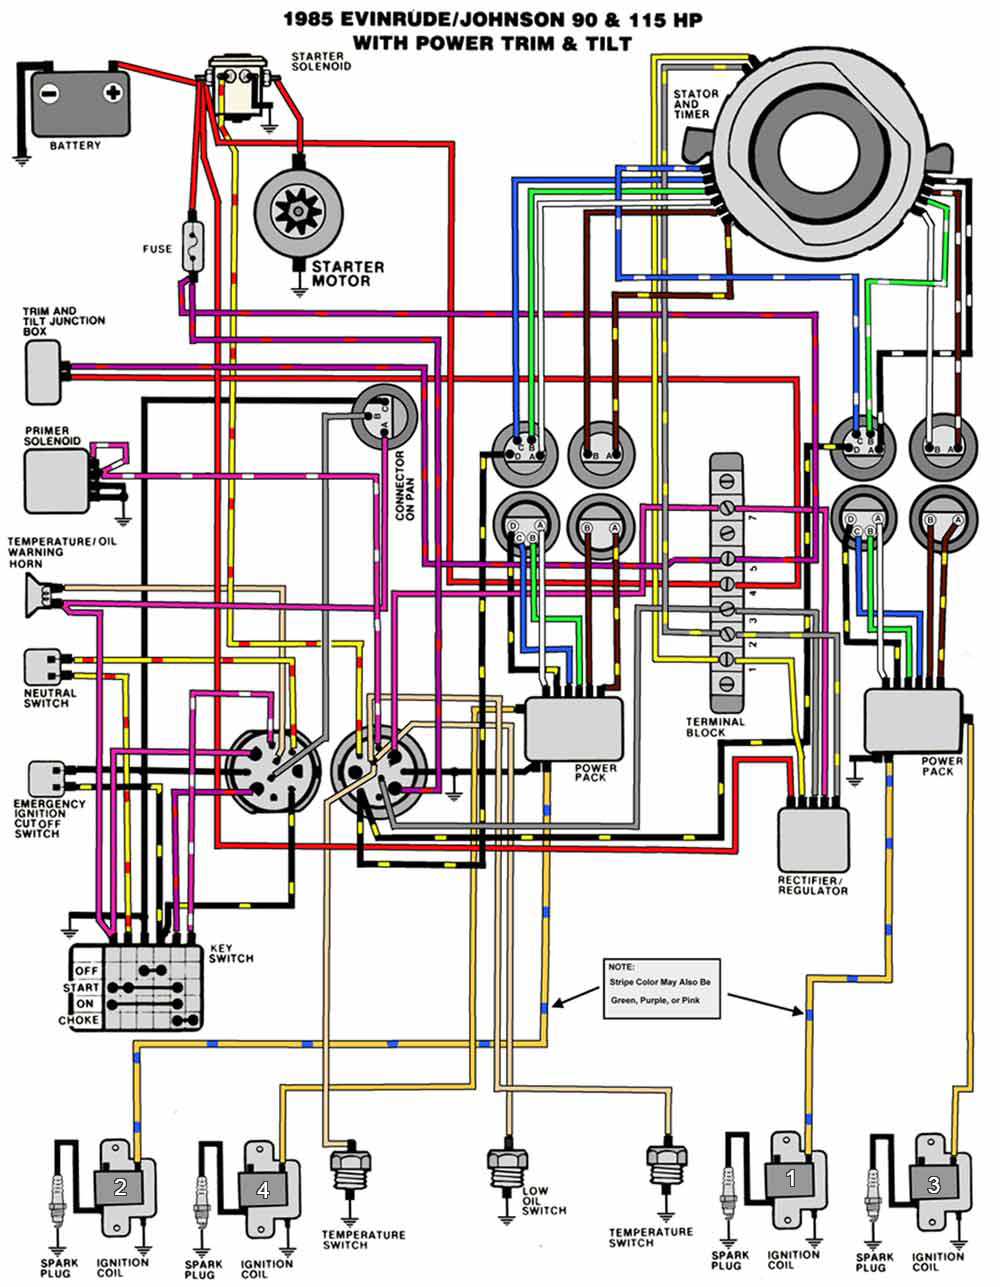 1985_90_115TnT mastertech marine evinrude johnson outboard wiring diagrams  at crackthecode.co